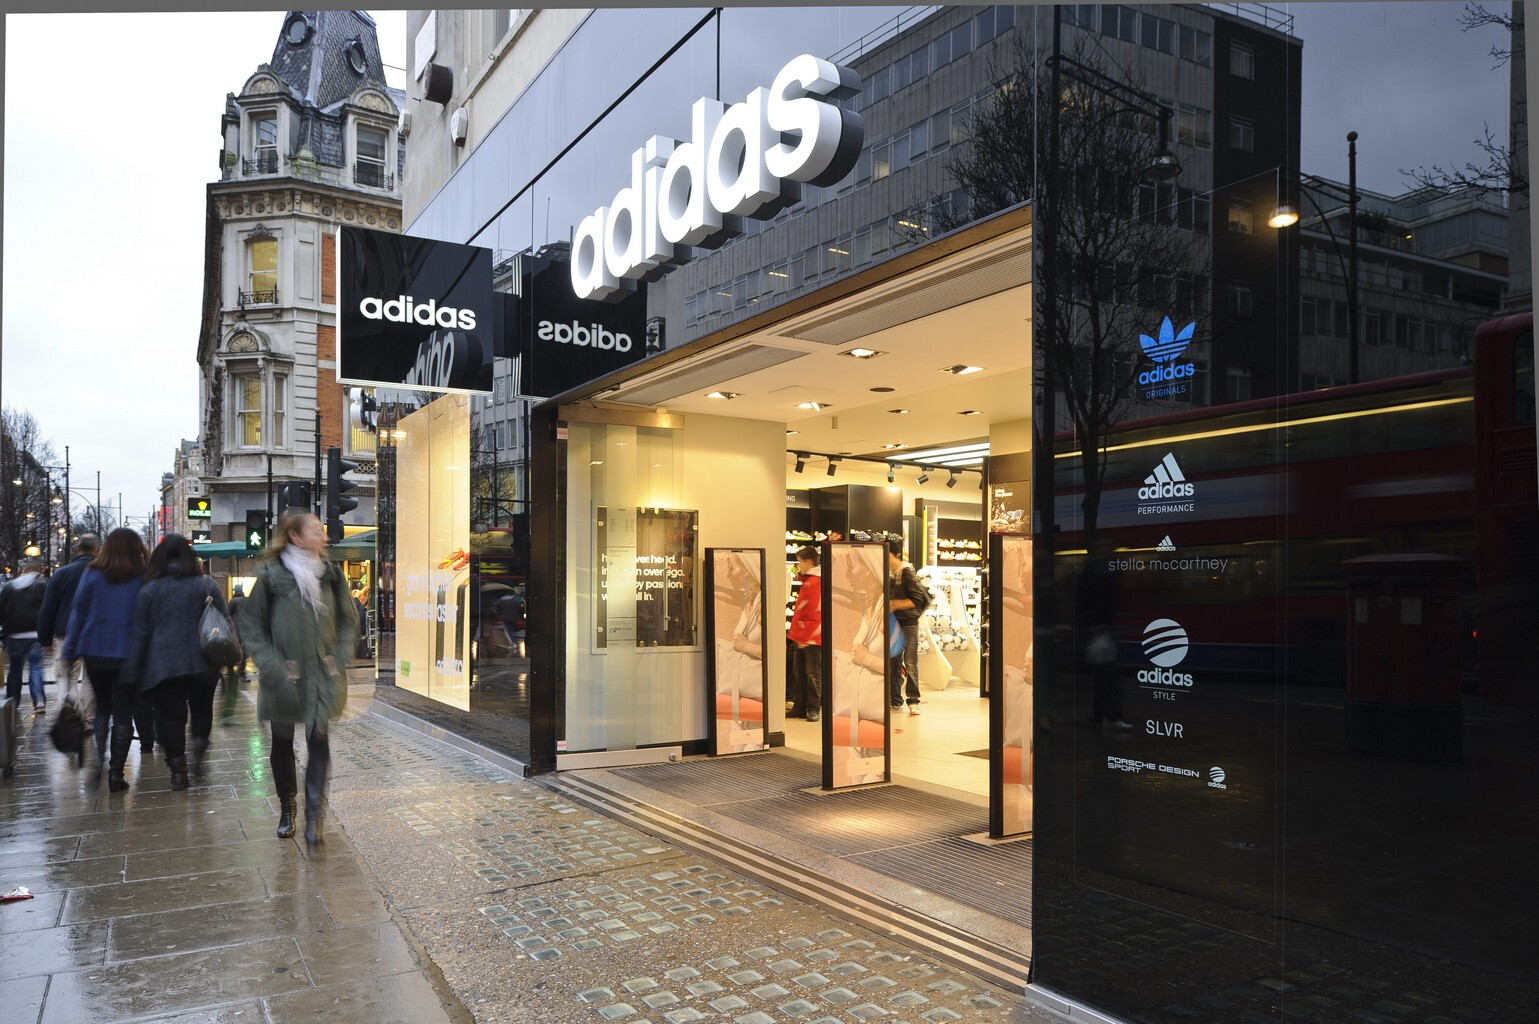 2adidas covent garden opening times